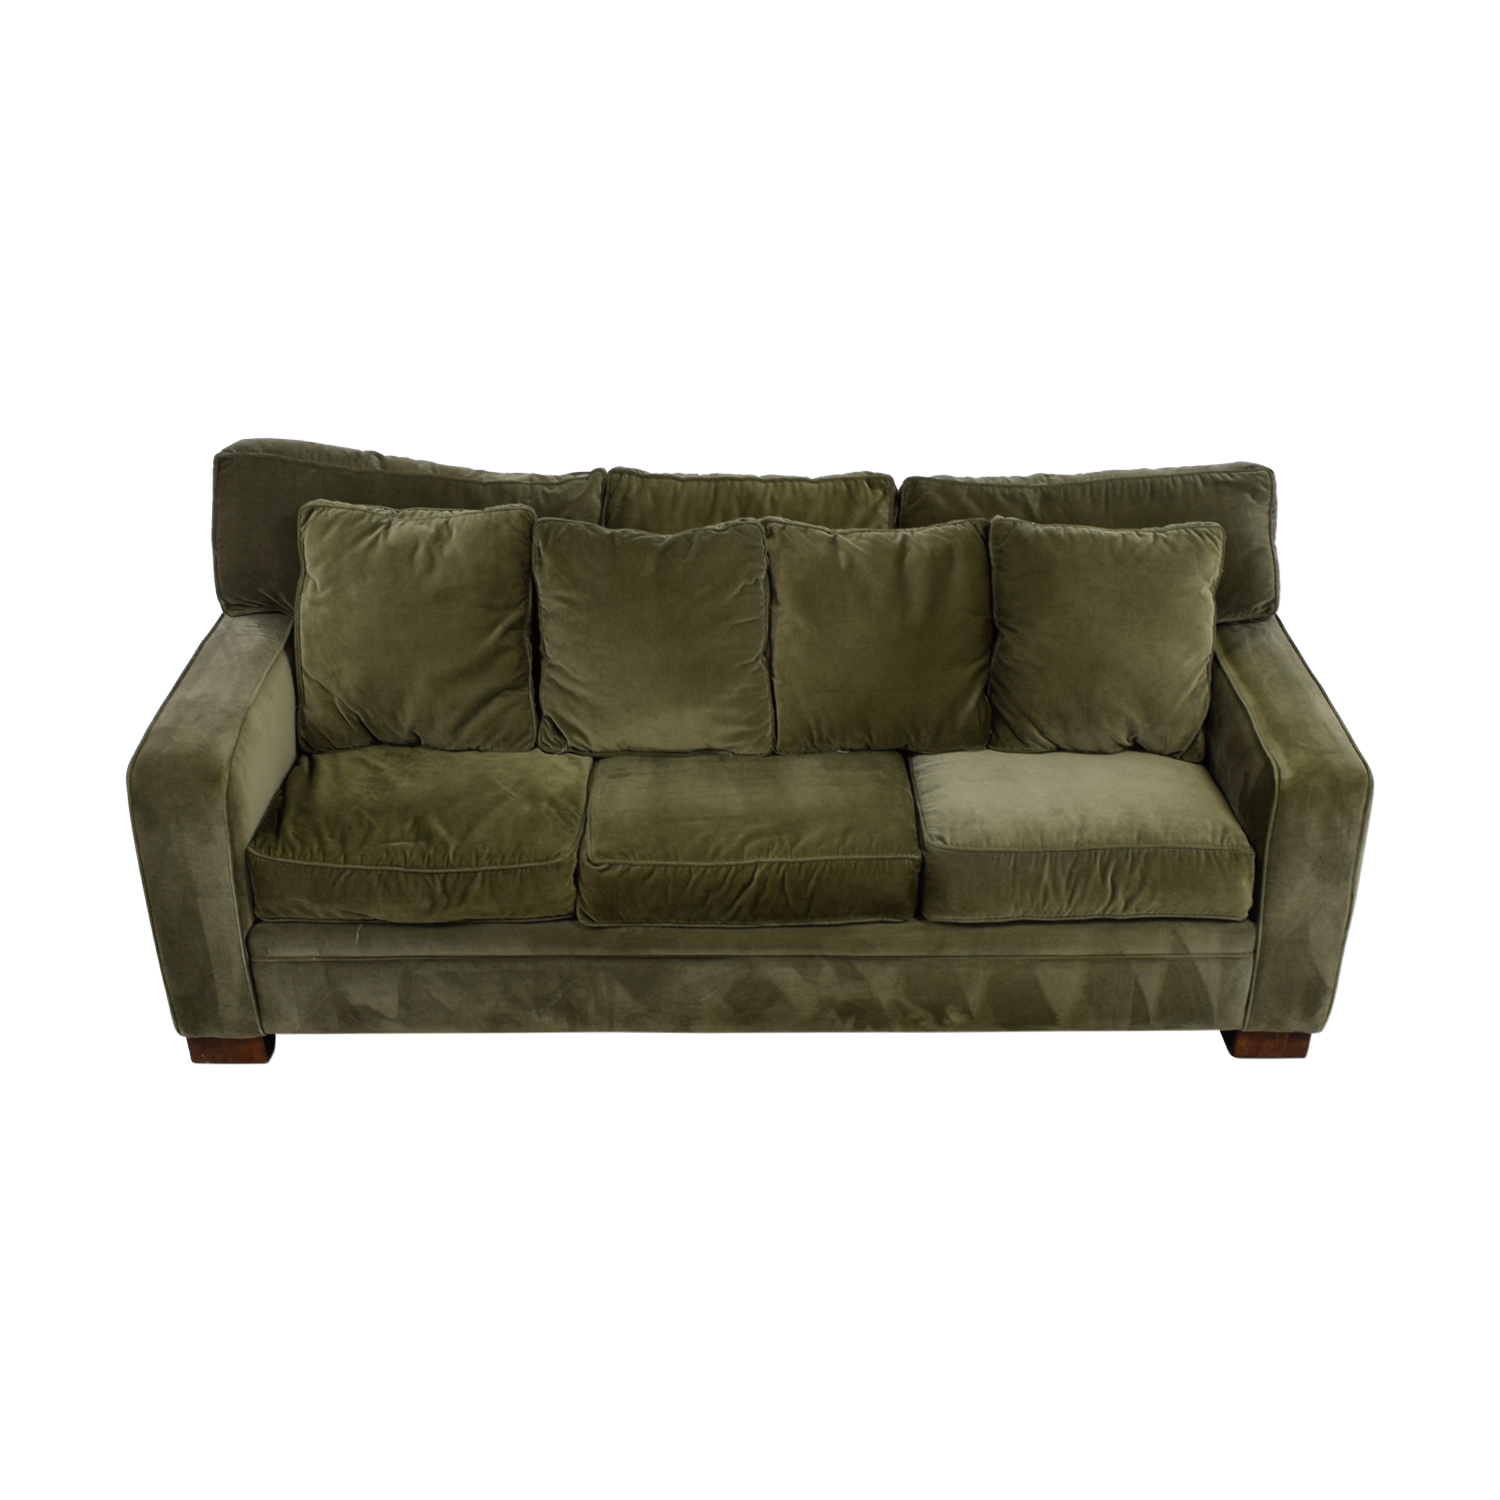 Macys Macys Sage Green Three-Cushion Couch price